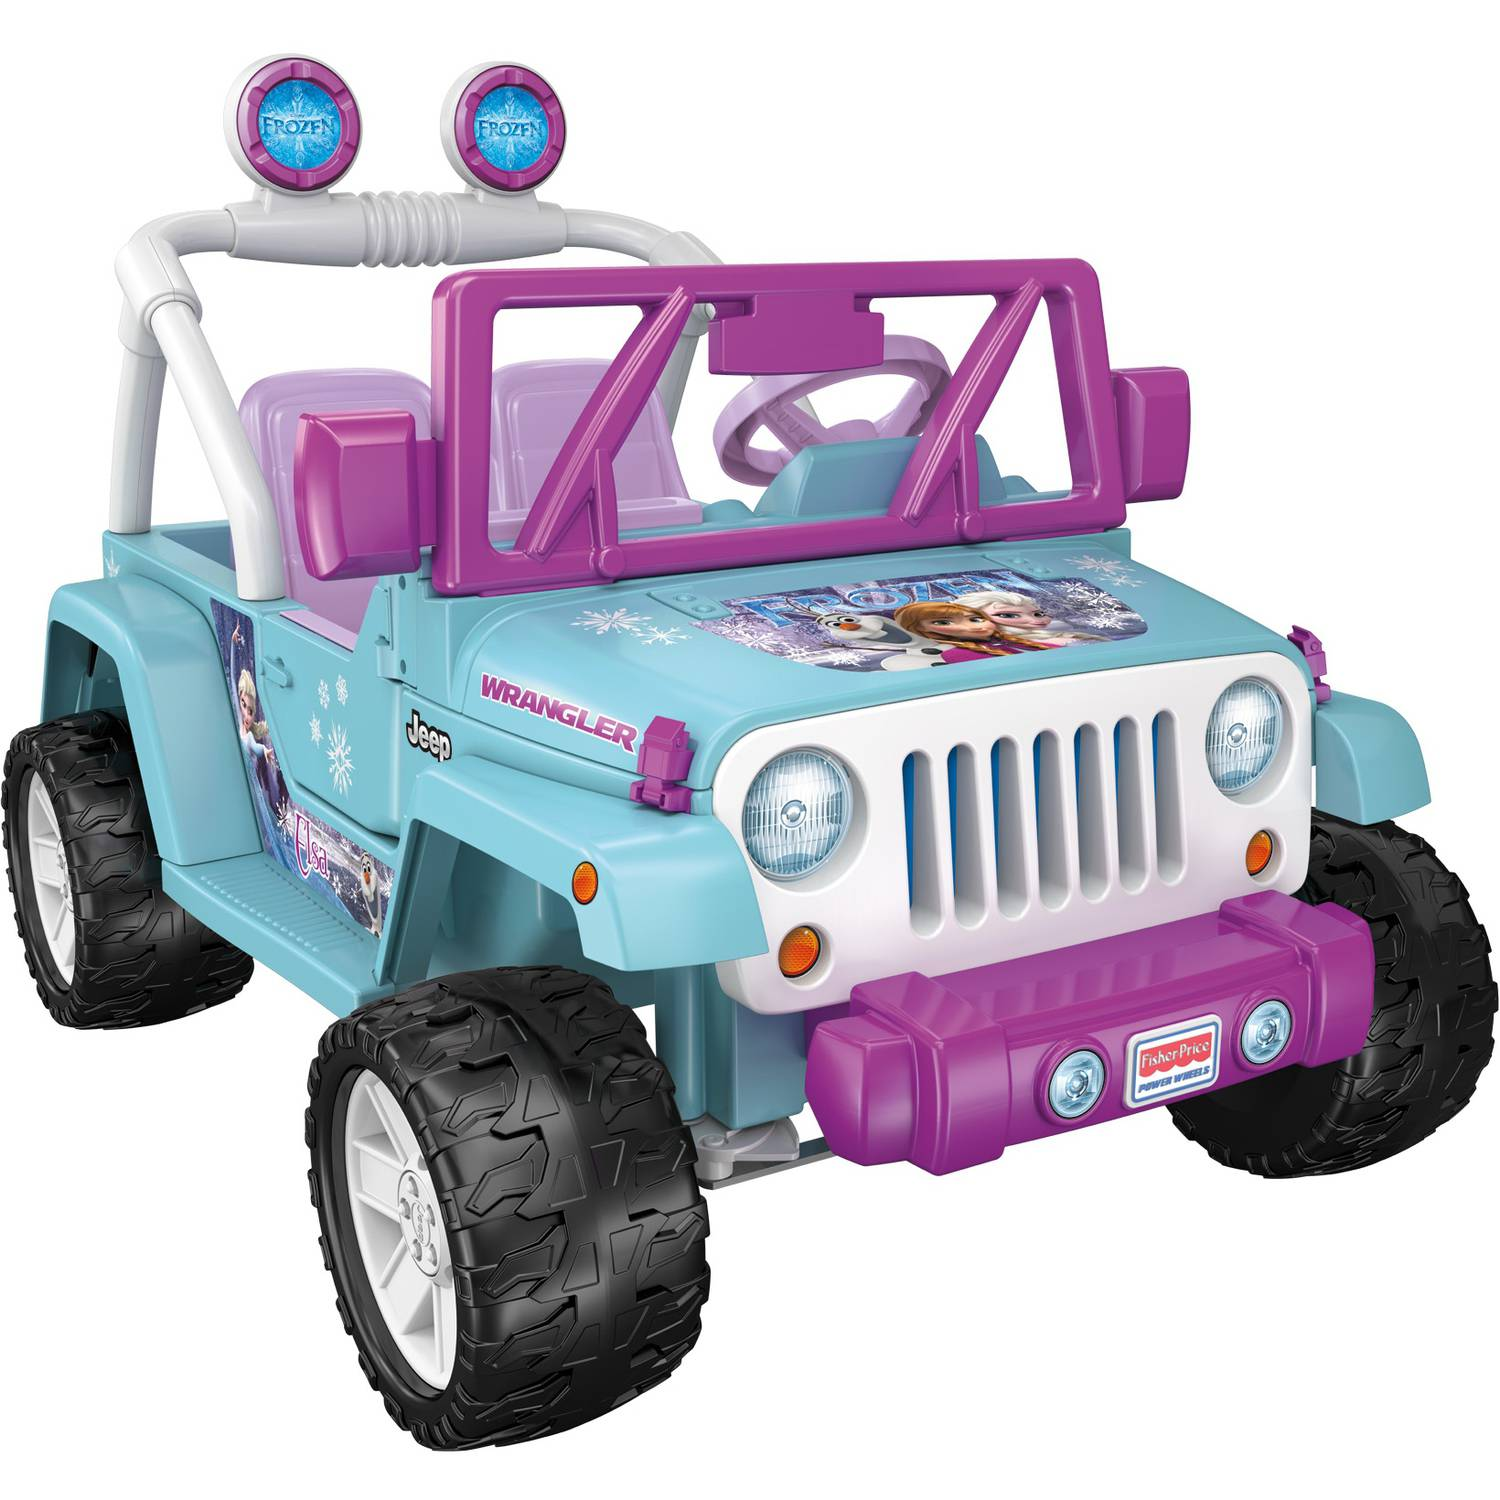 power wheels disney frozen jeep wrangler 12 volt battery powered ride on walmartcom